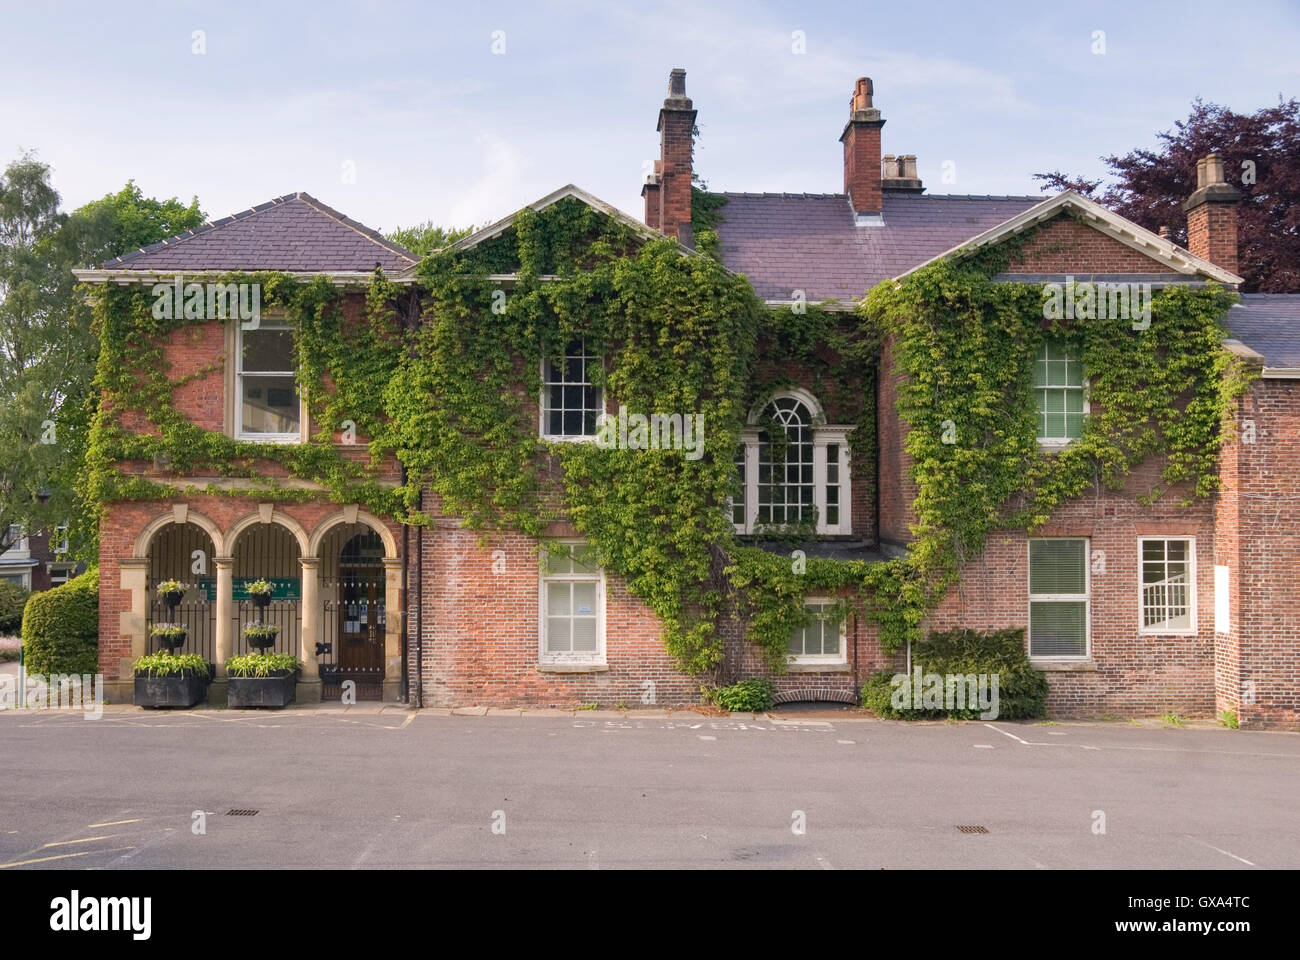 Sheffield, UK - 03 May : Meersbrook House covered in ivy on 03.May 2016 at Meersboork Park, Sheffield. Former home - Stock Image